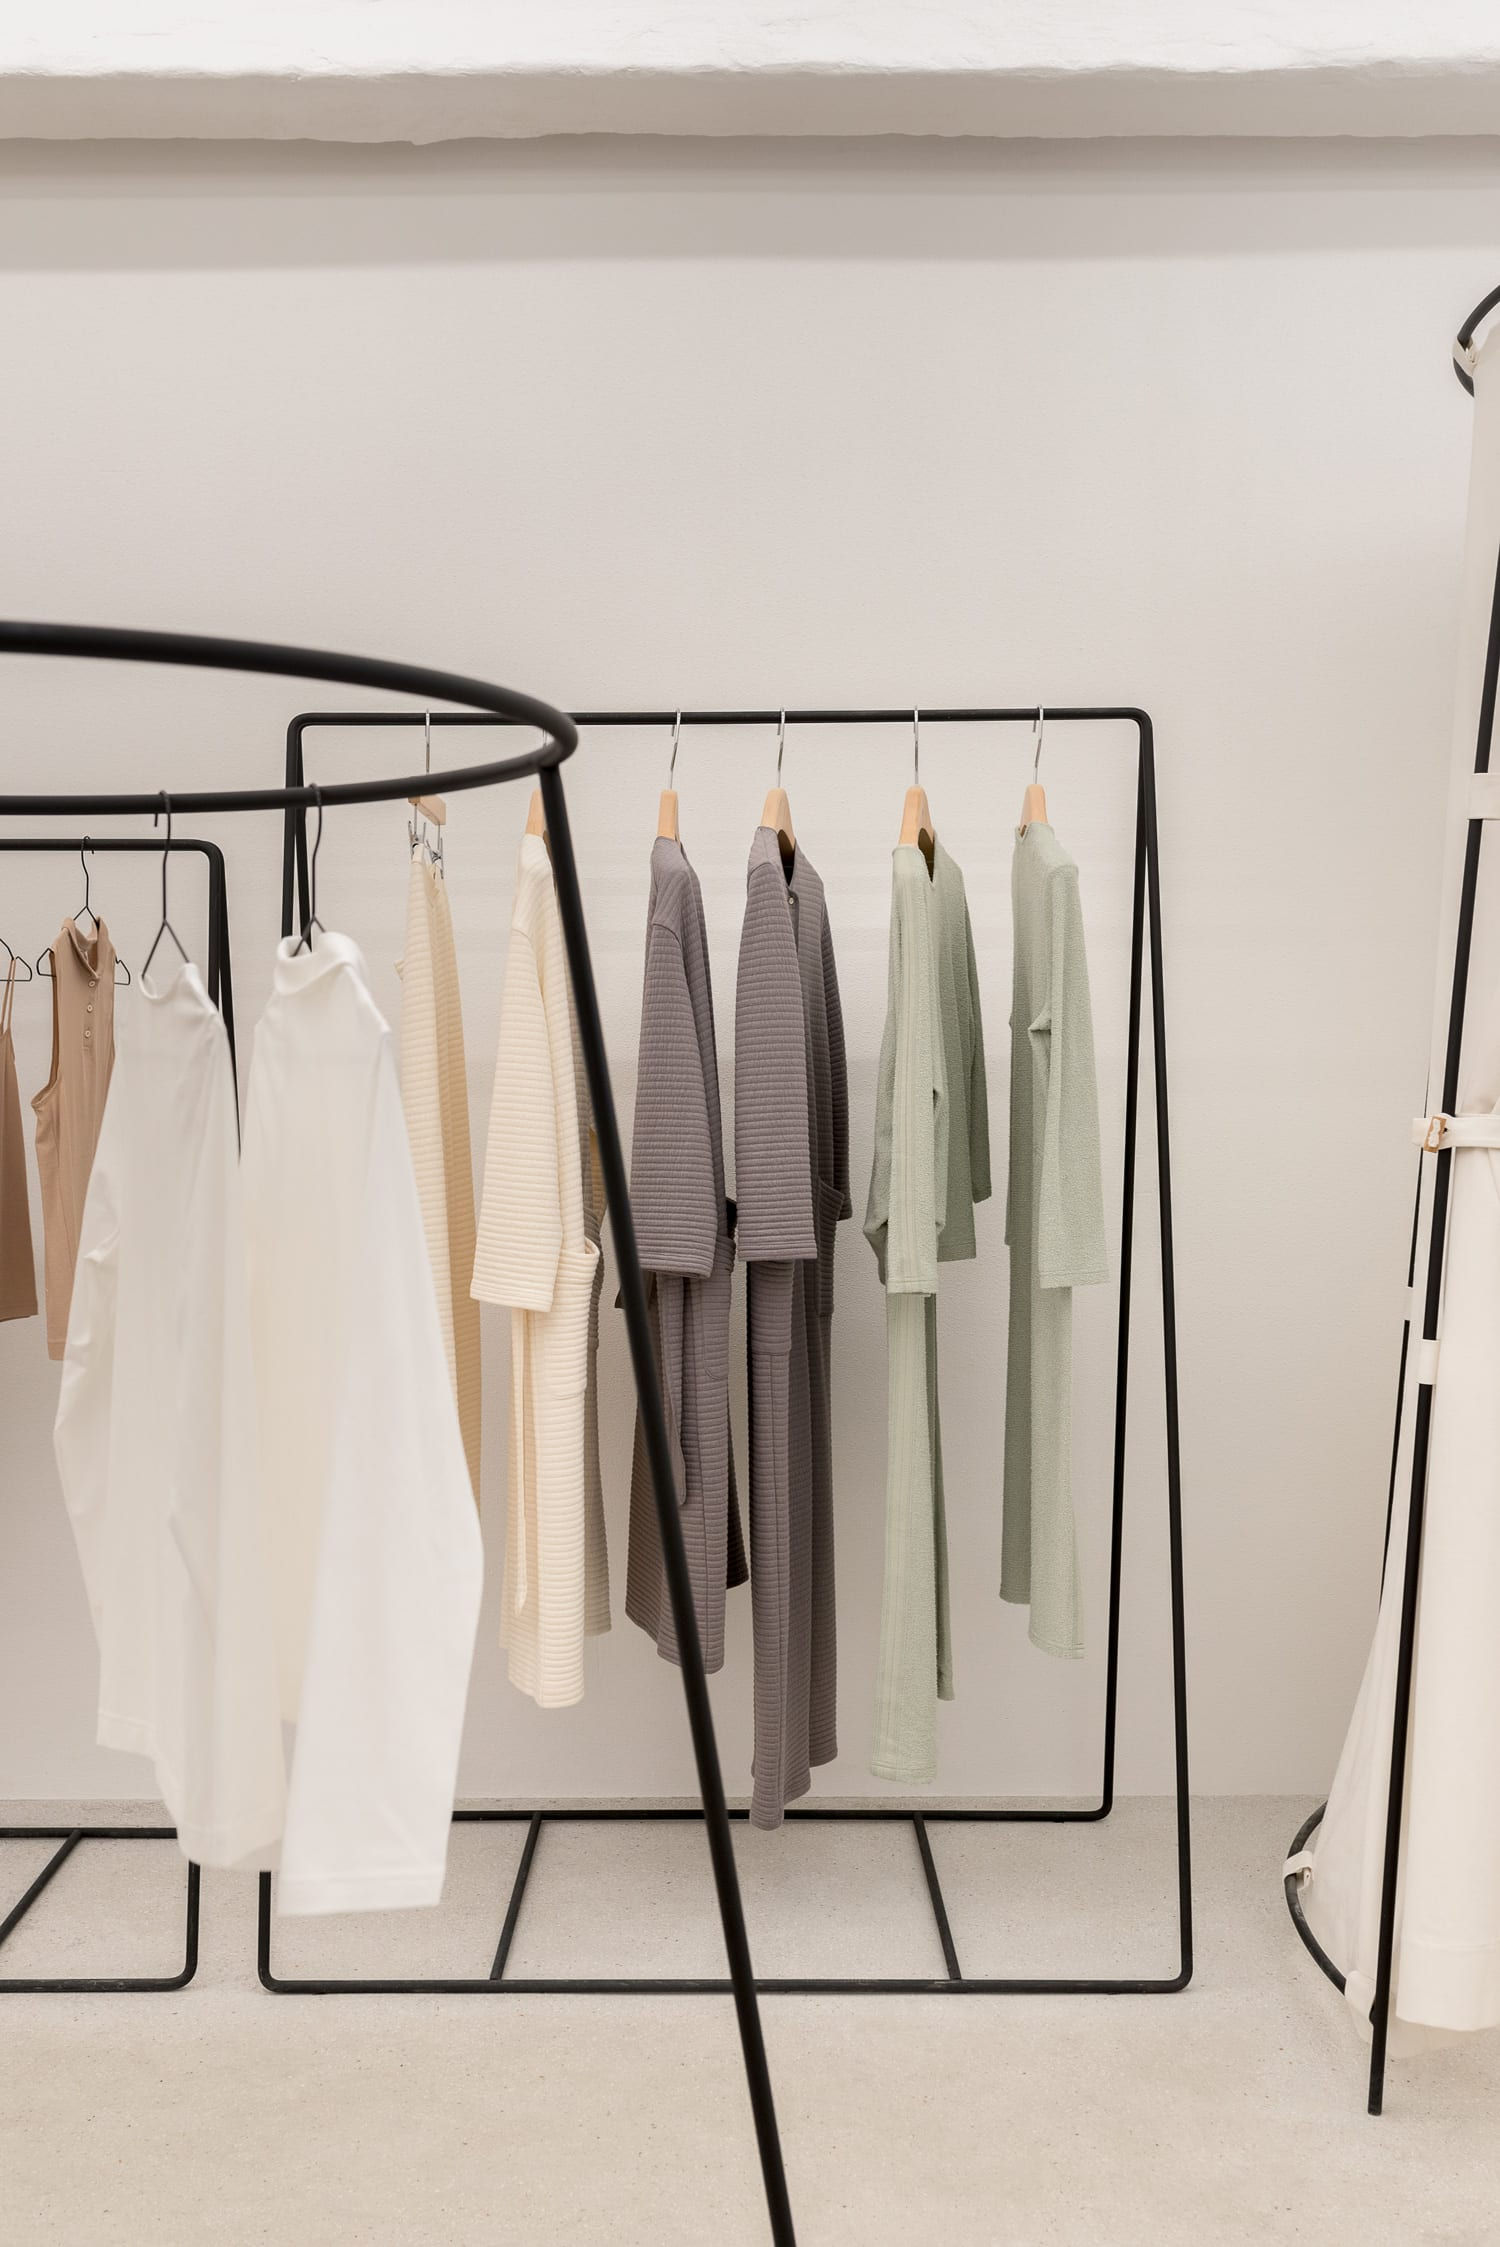 klee klee Fashion Store in Shanghai by AIM Architecture   Yellowtrace